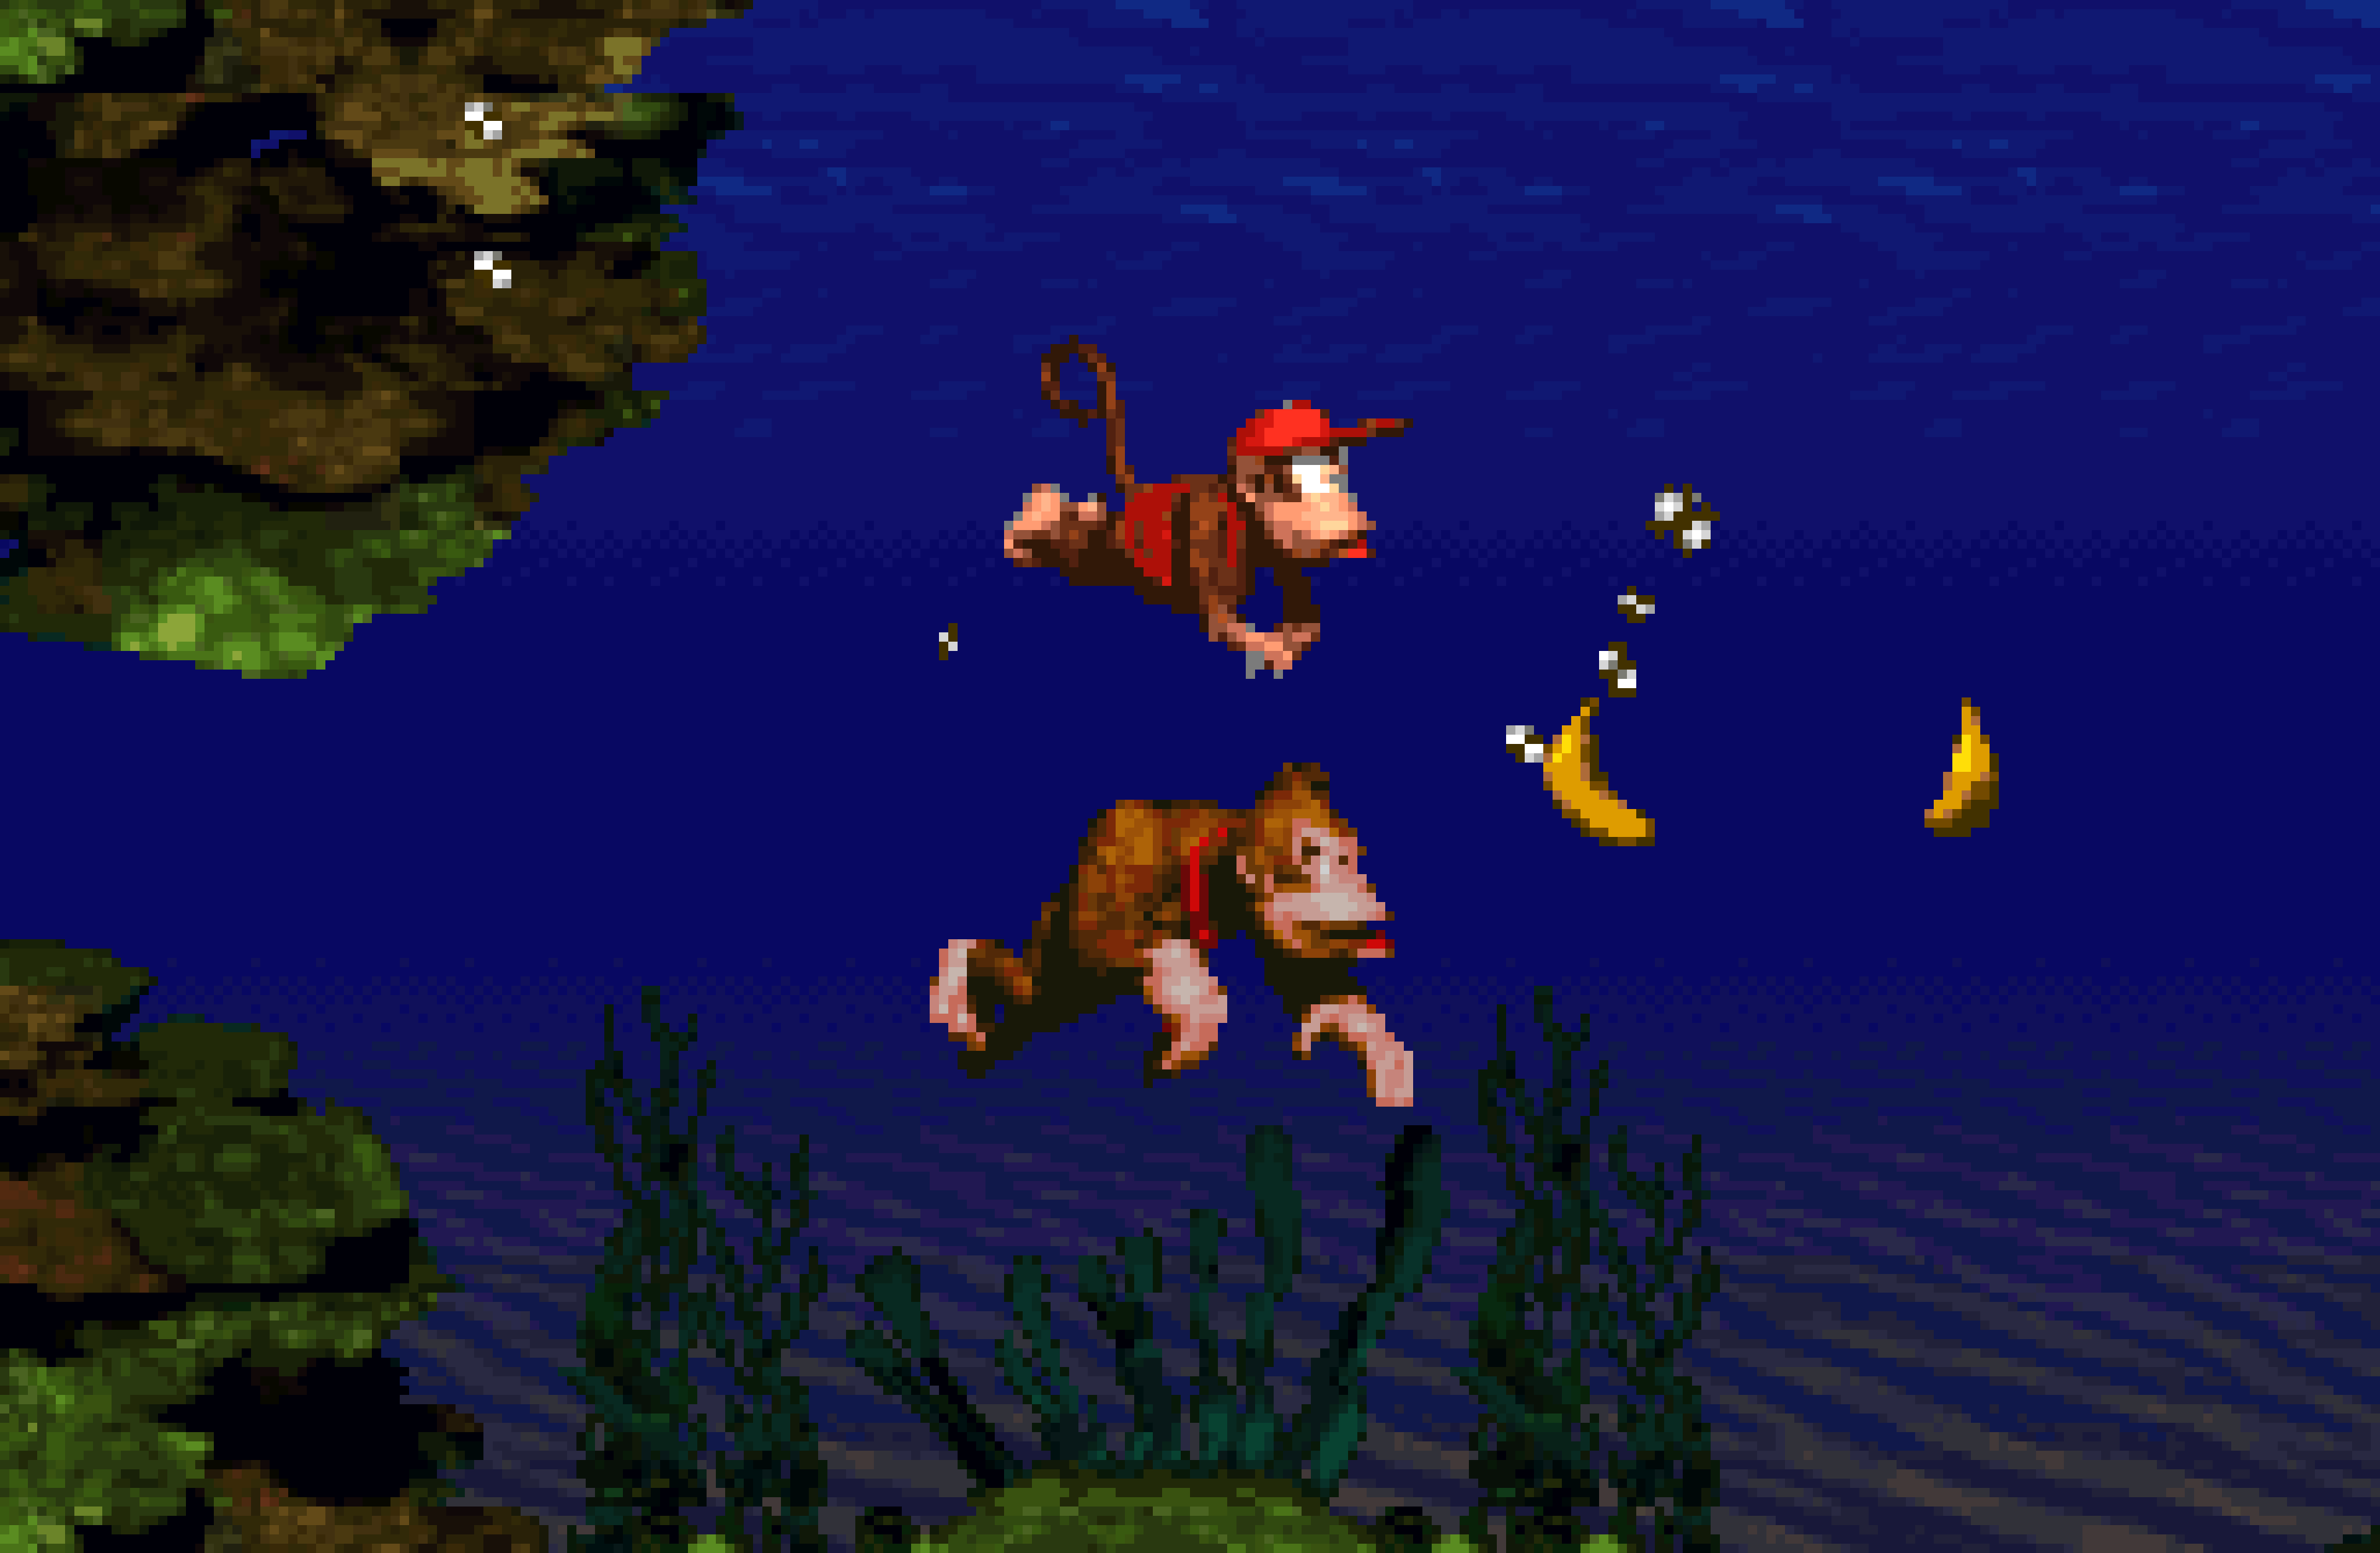 Underwater in Donkey Kong Country, which plays Aquatic Ambience.